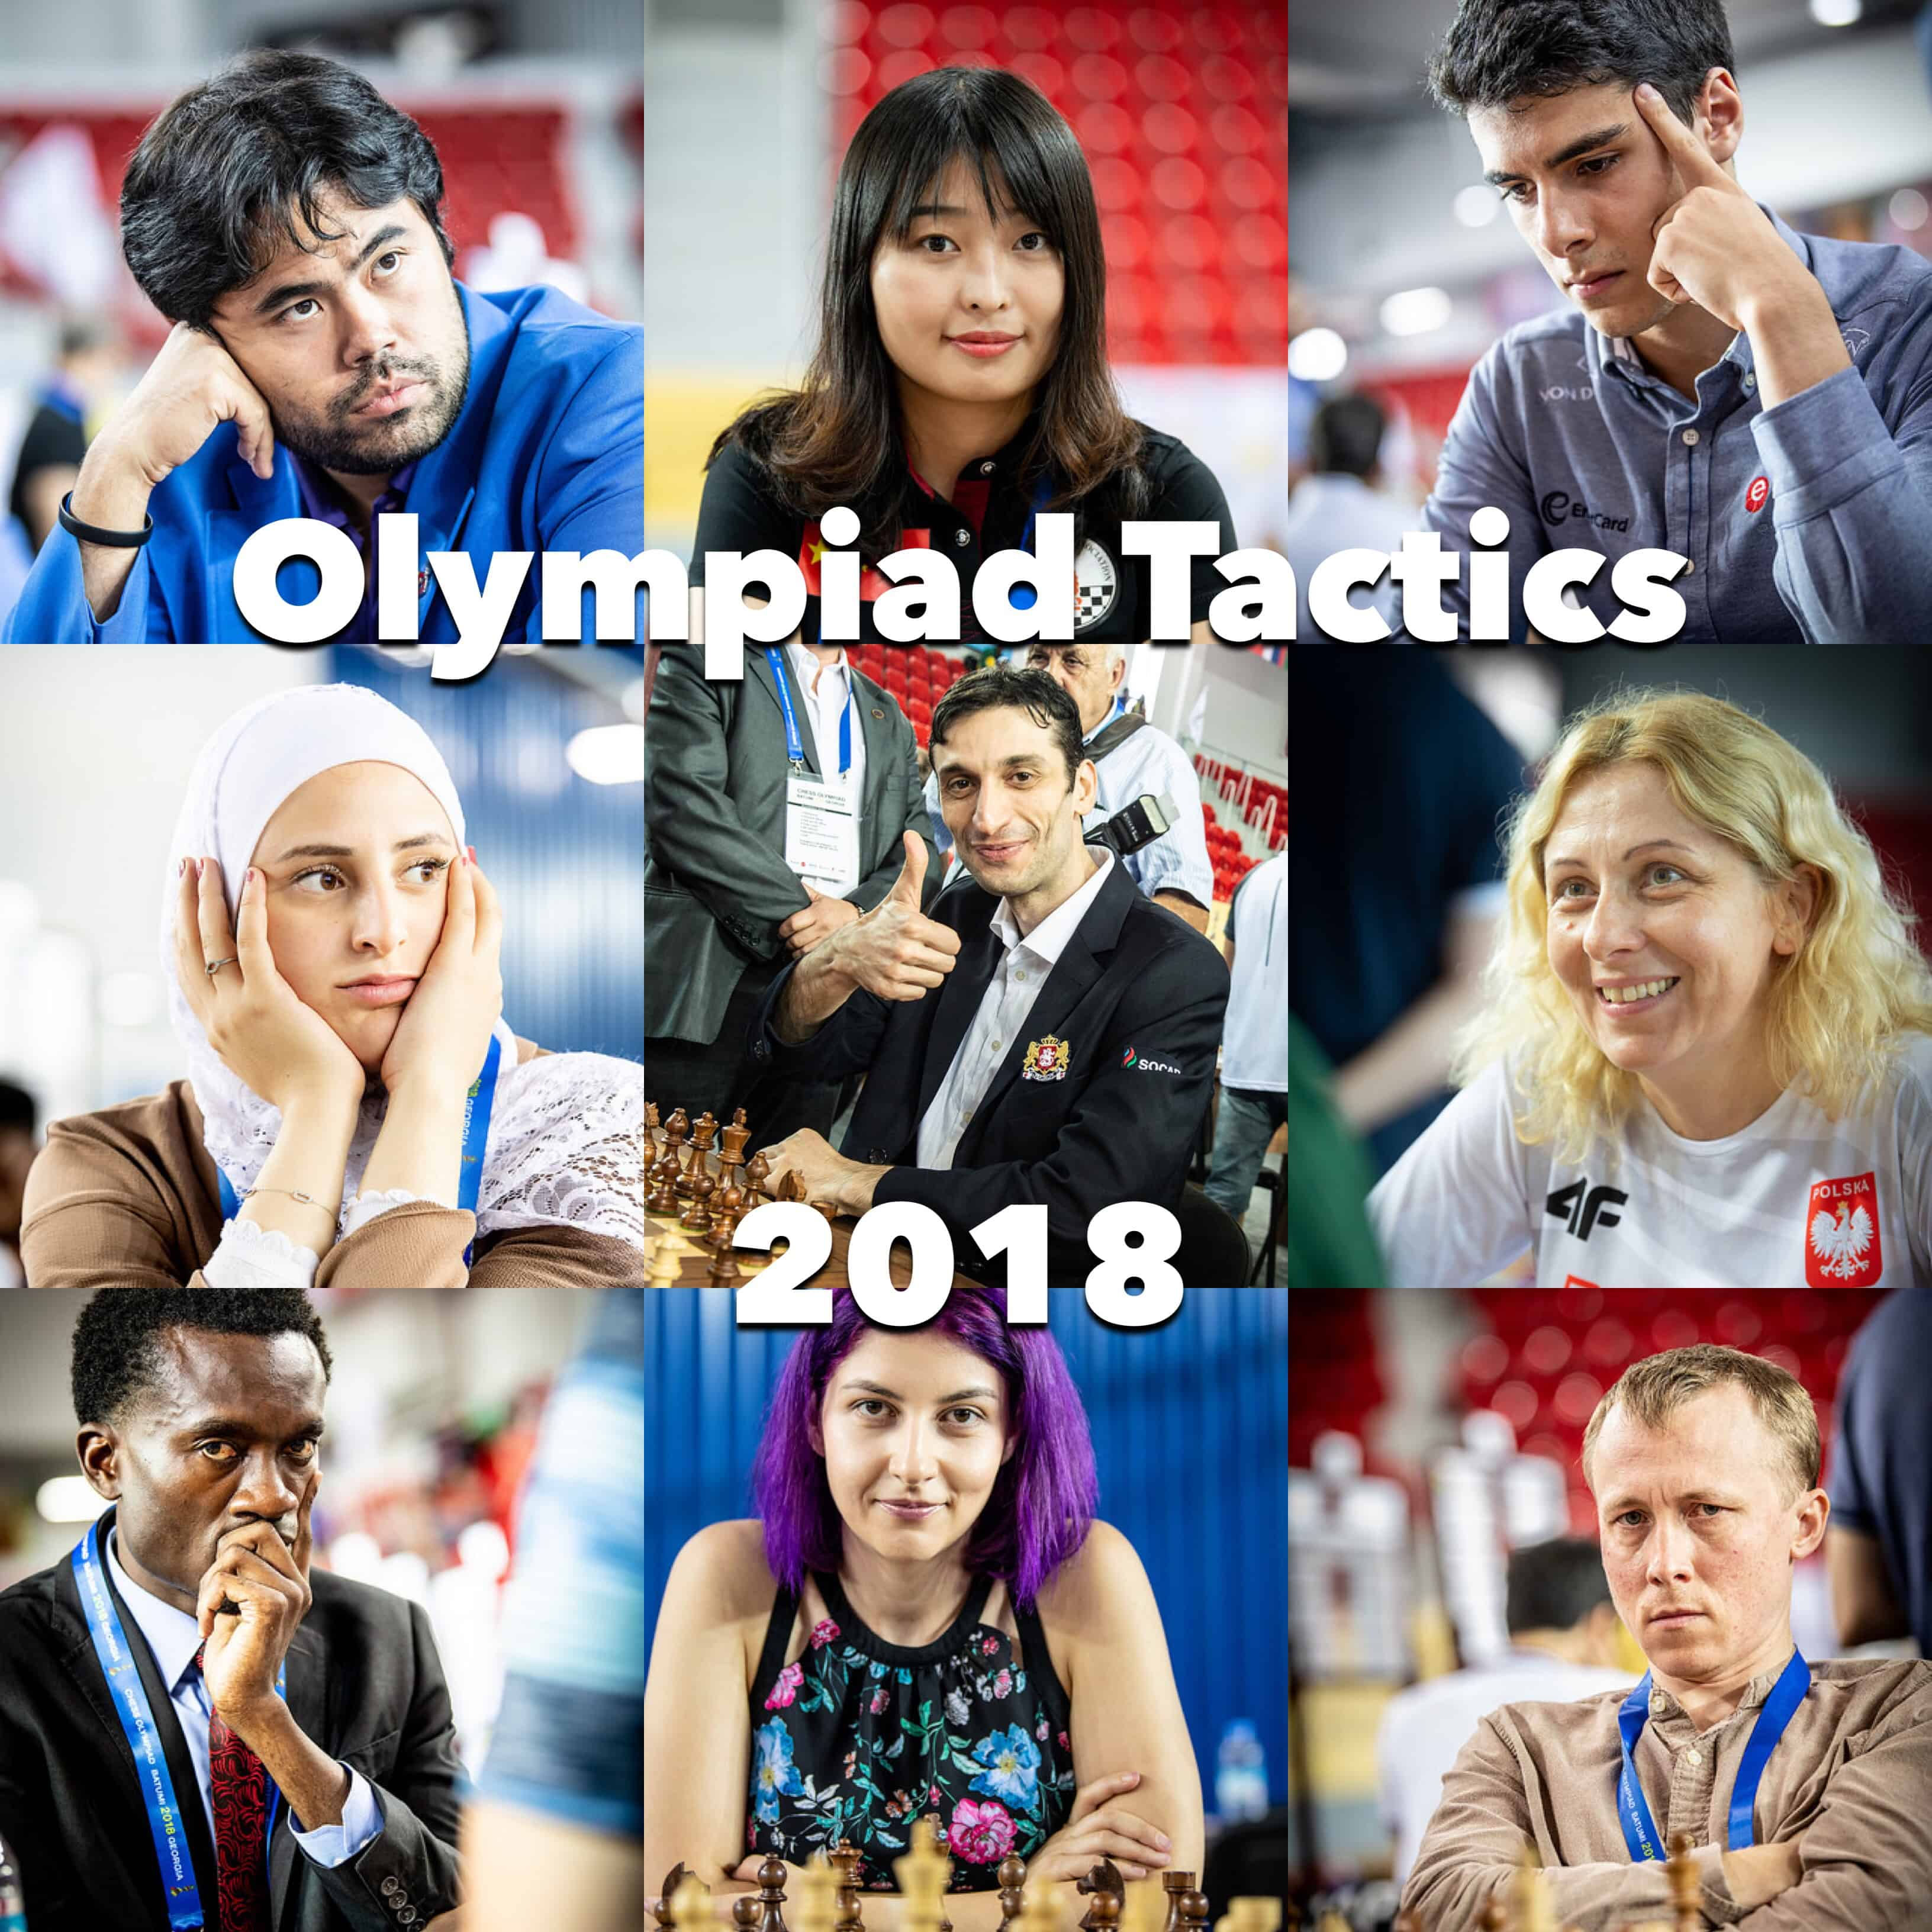 Get our FREE 2018 Chess Olympiad tactics course now